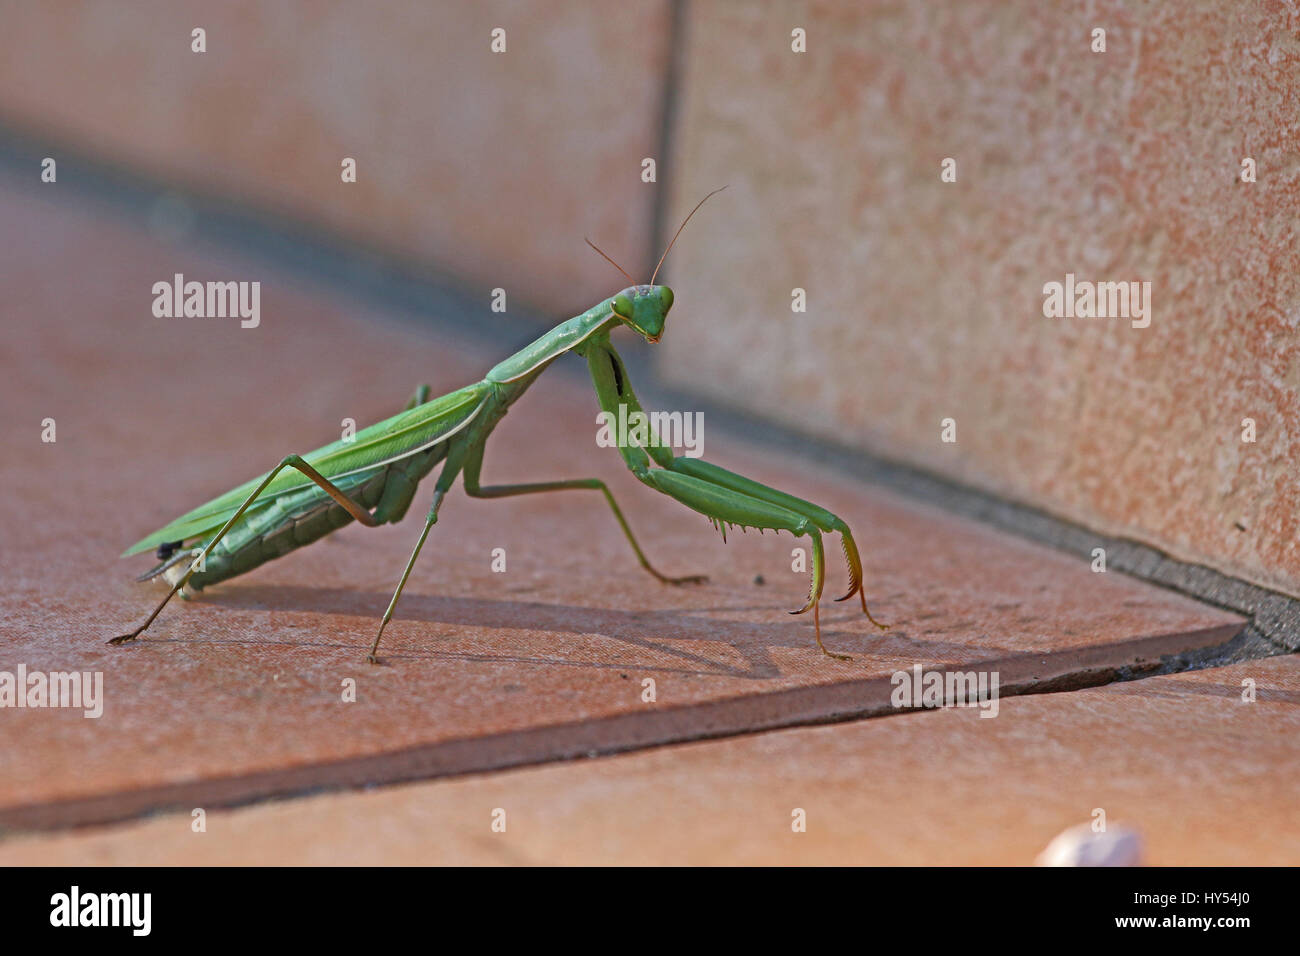 Praying mantis or mantid very close up Latin name mantis religiosa settled on a patio step in summer in Italy - Stock Image